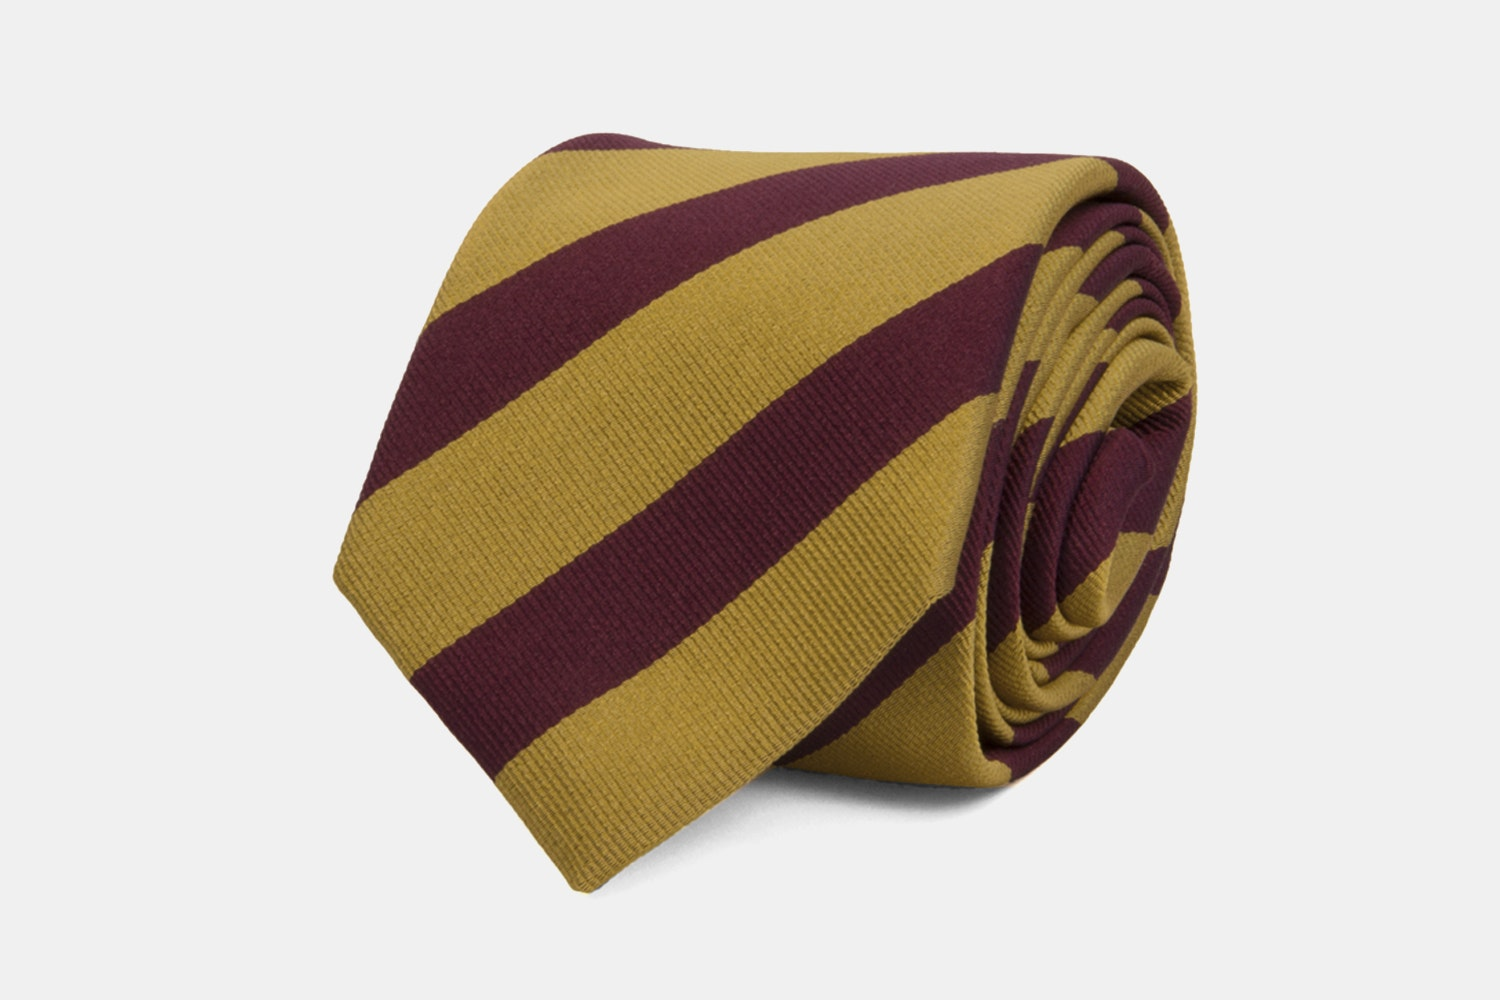 Club-striped - Gold/Burgundy